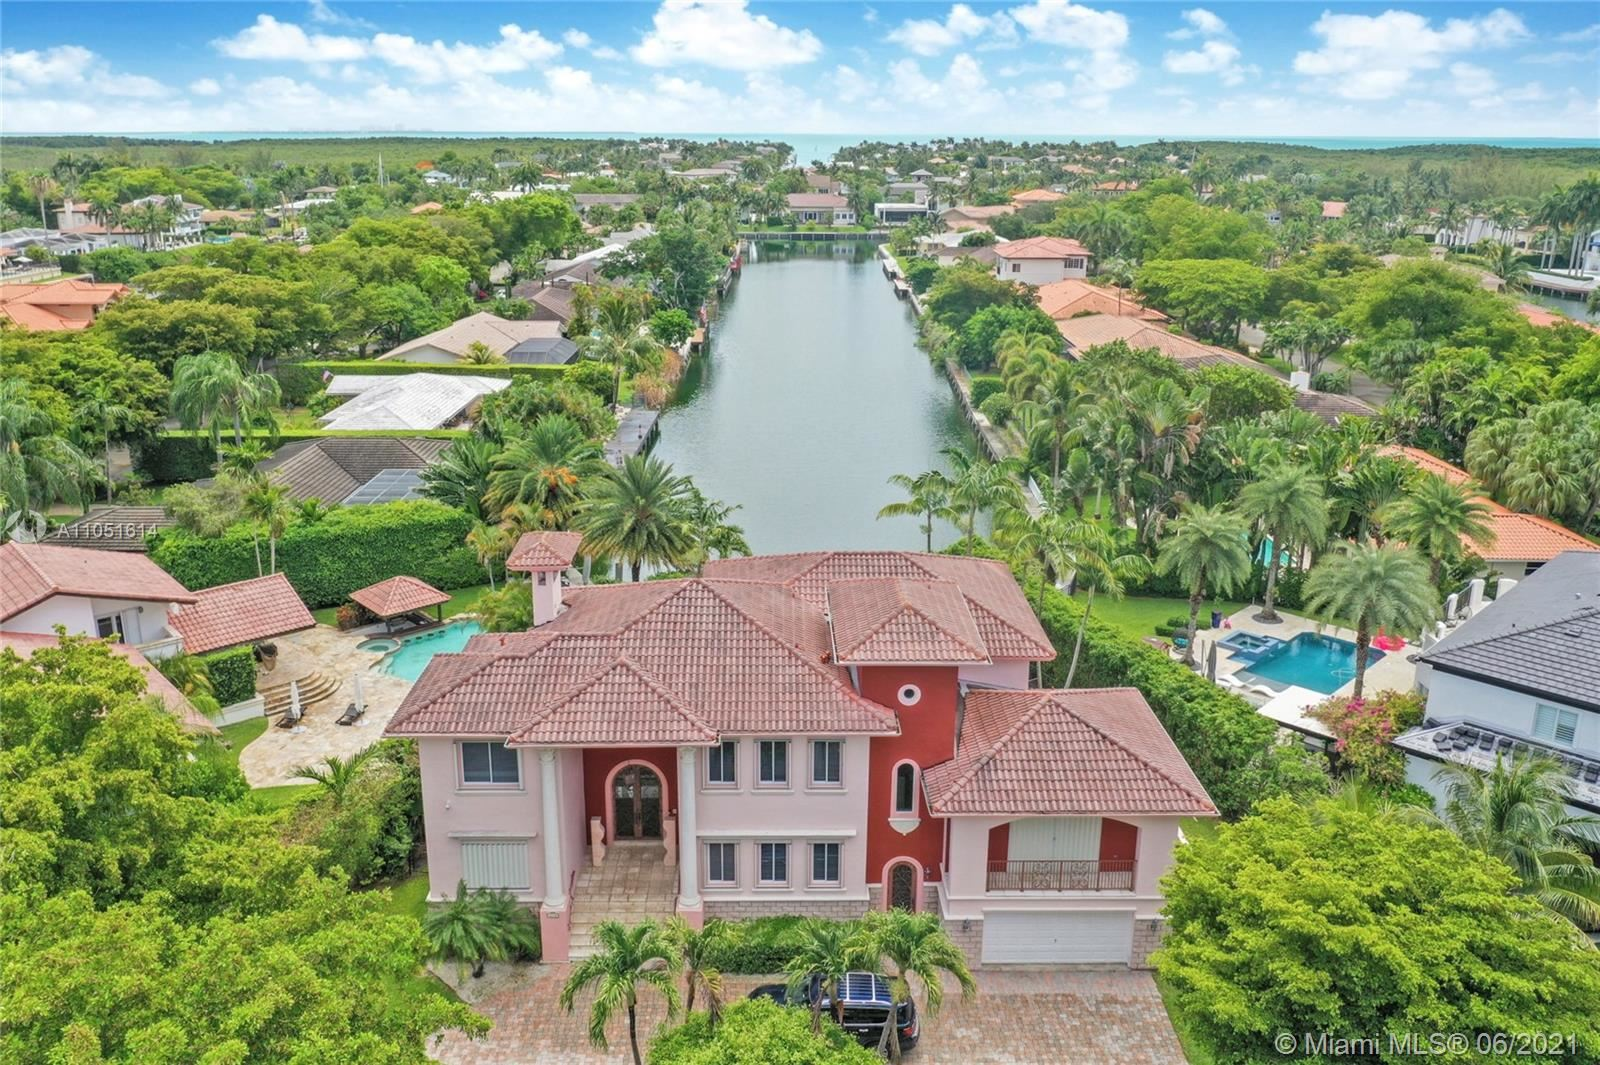 12937 SW 57th Ave, Coral Gables, FL 33156 - #: A11051614